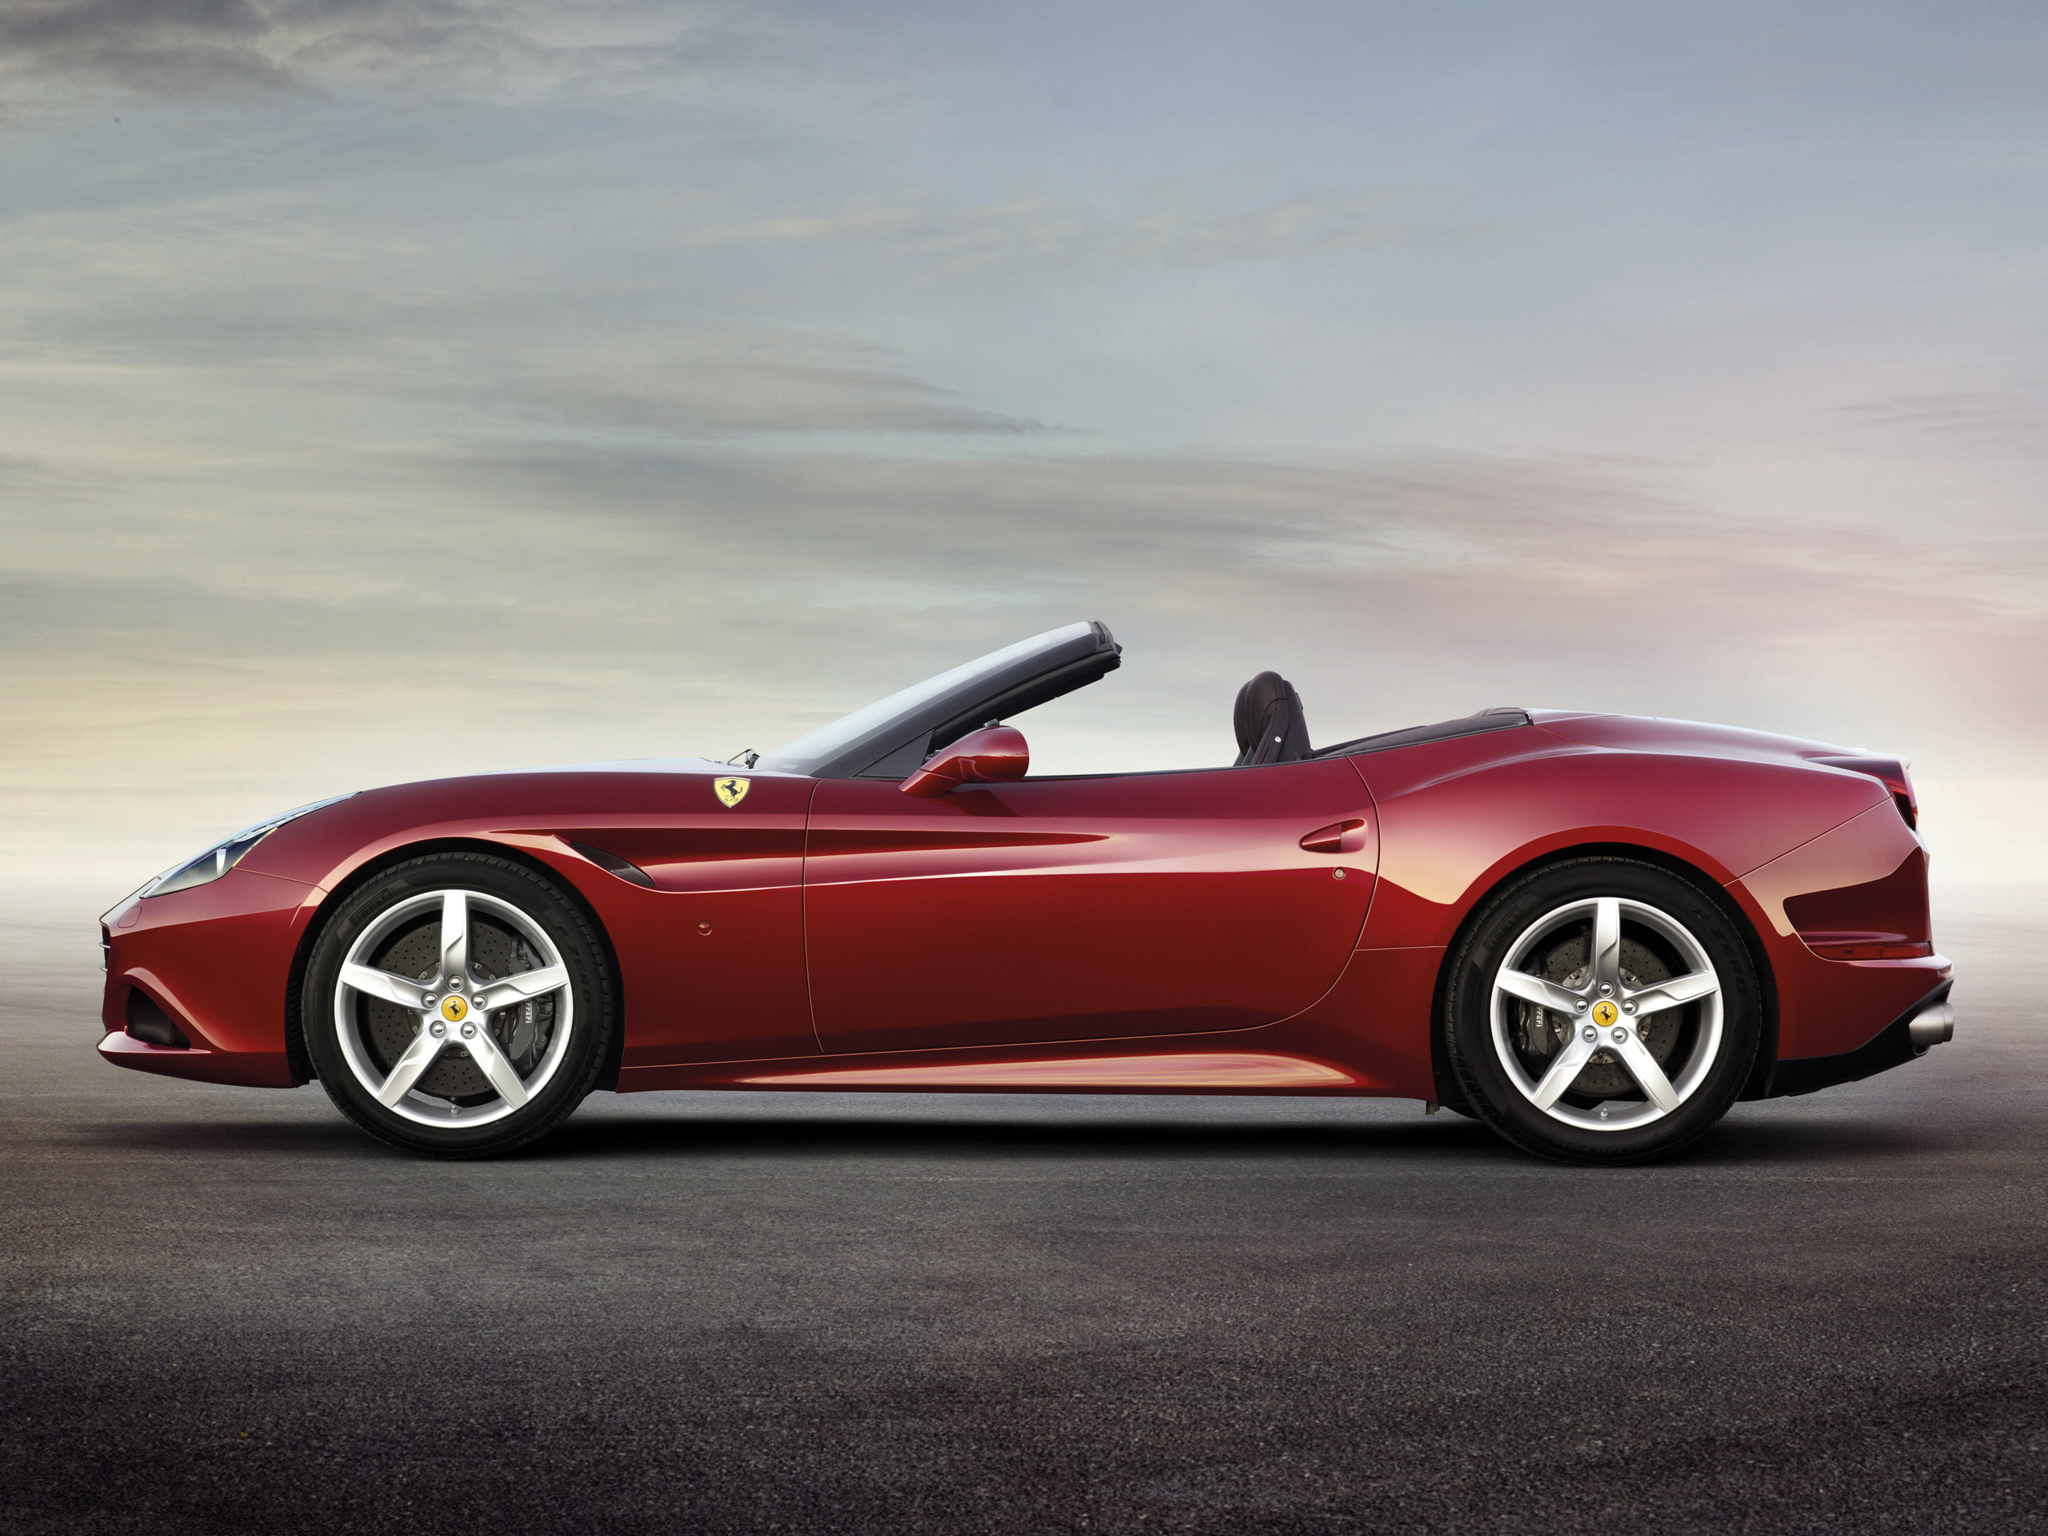 https://www.whatcar.lv/cars/Ferrari/California rodsters/2a5e5aaa8740a7315e5820a113418f8f.jpg